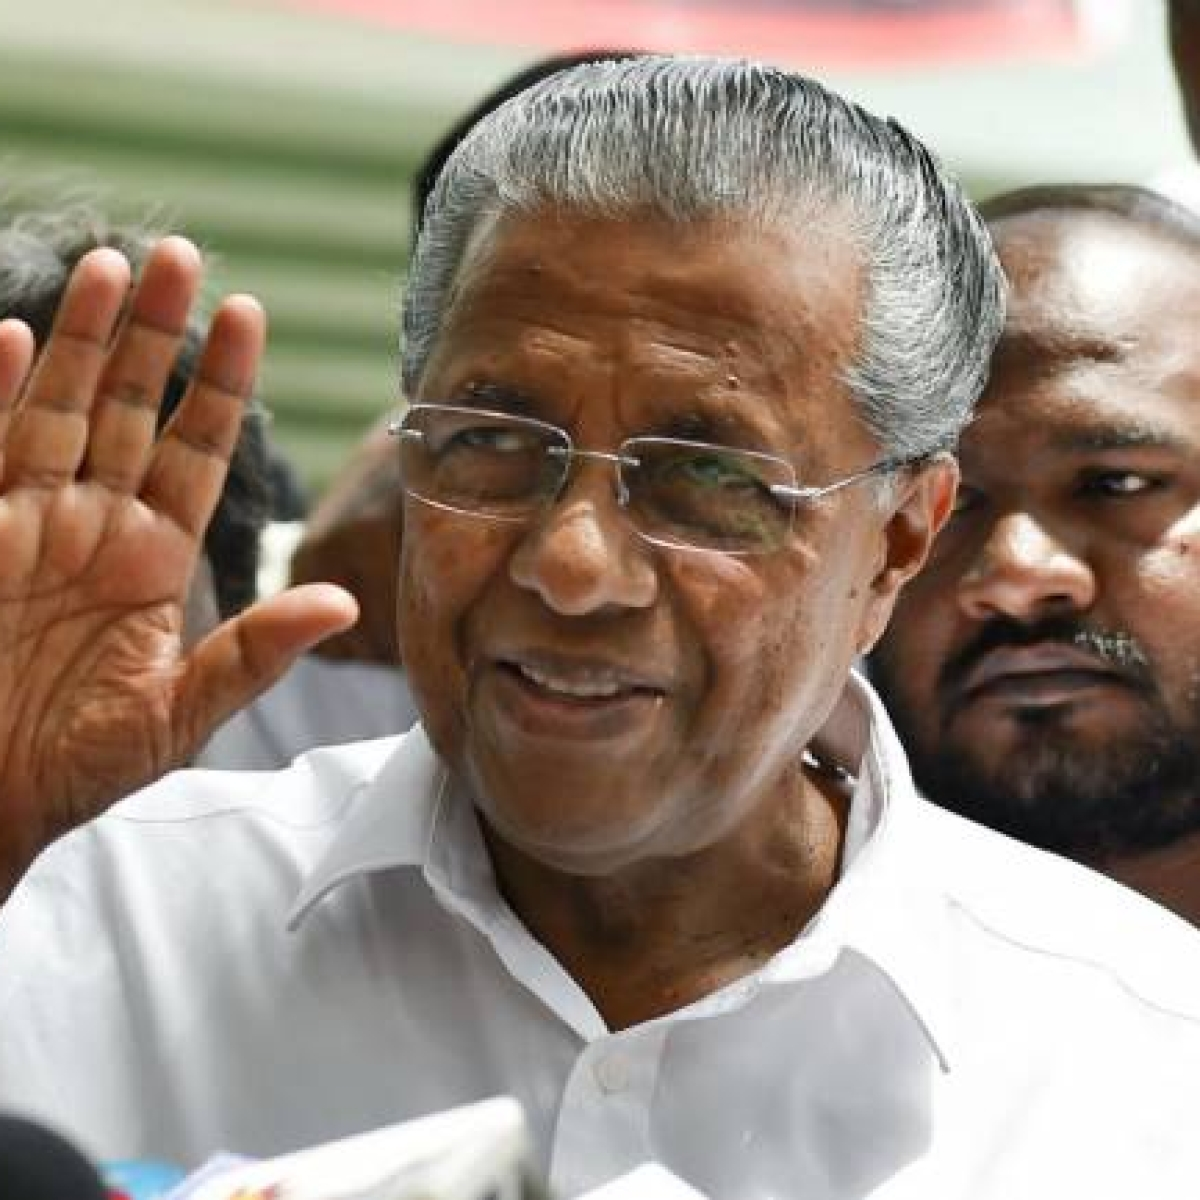 Coronavirus Update: Kerala CM allows sale of alcohol if individual has prescription after 5 with 'withdrawal symptoms' commit suicide